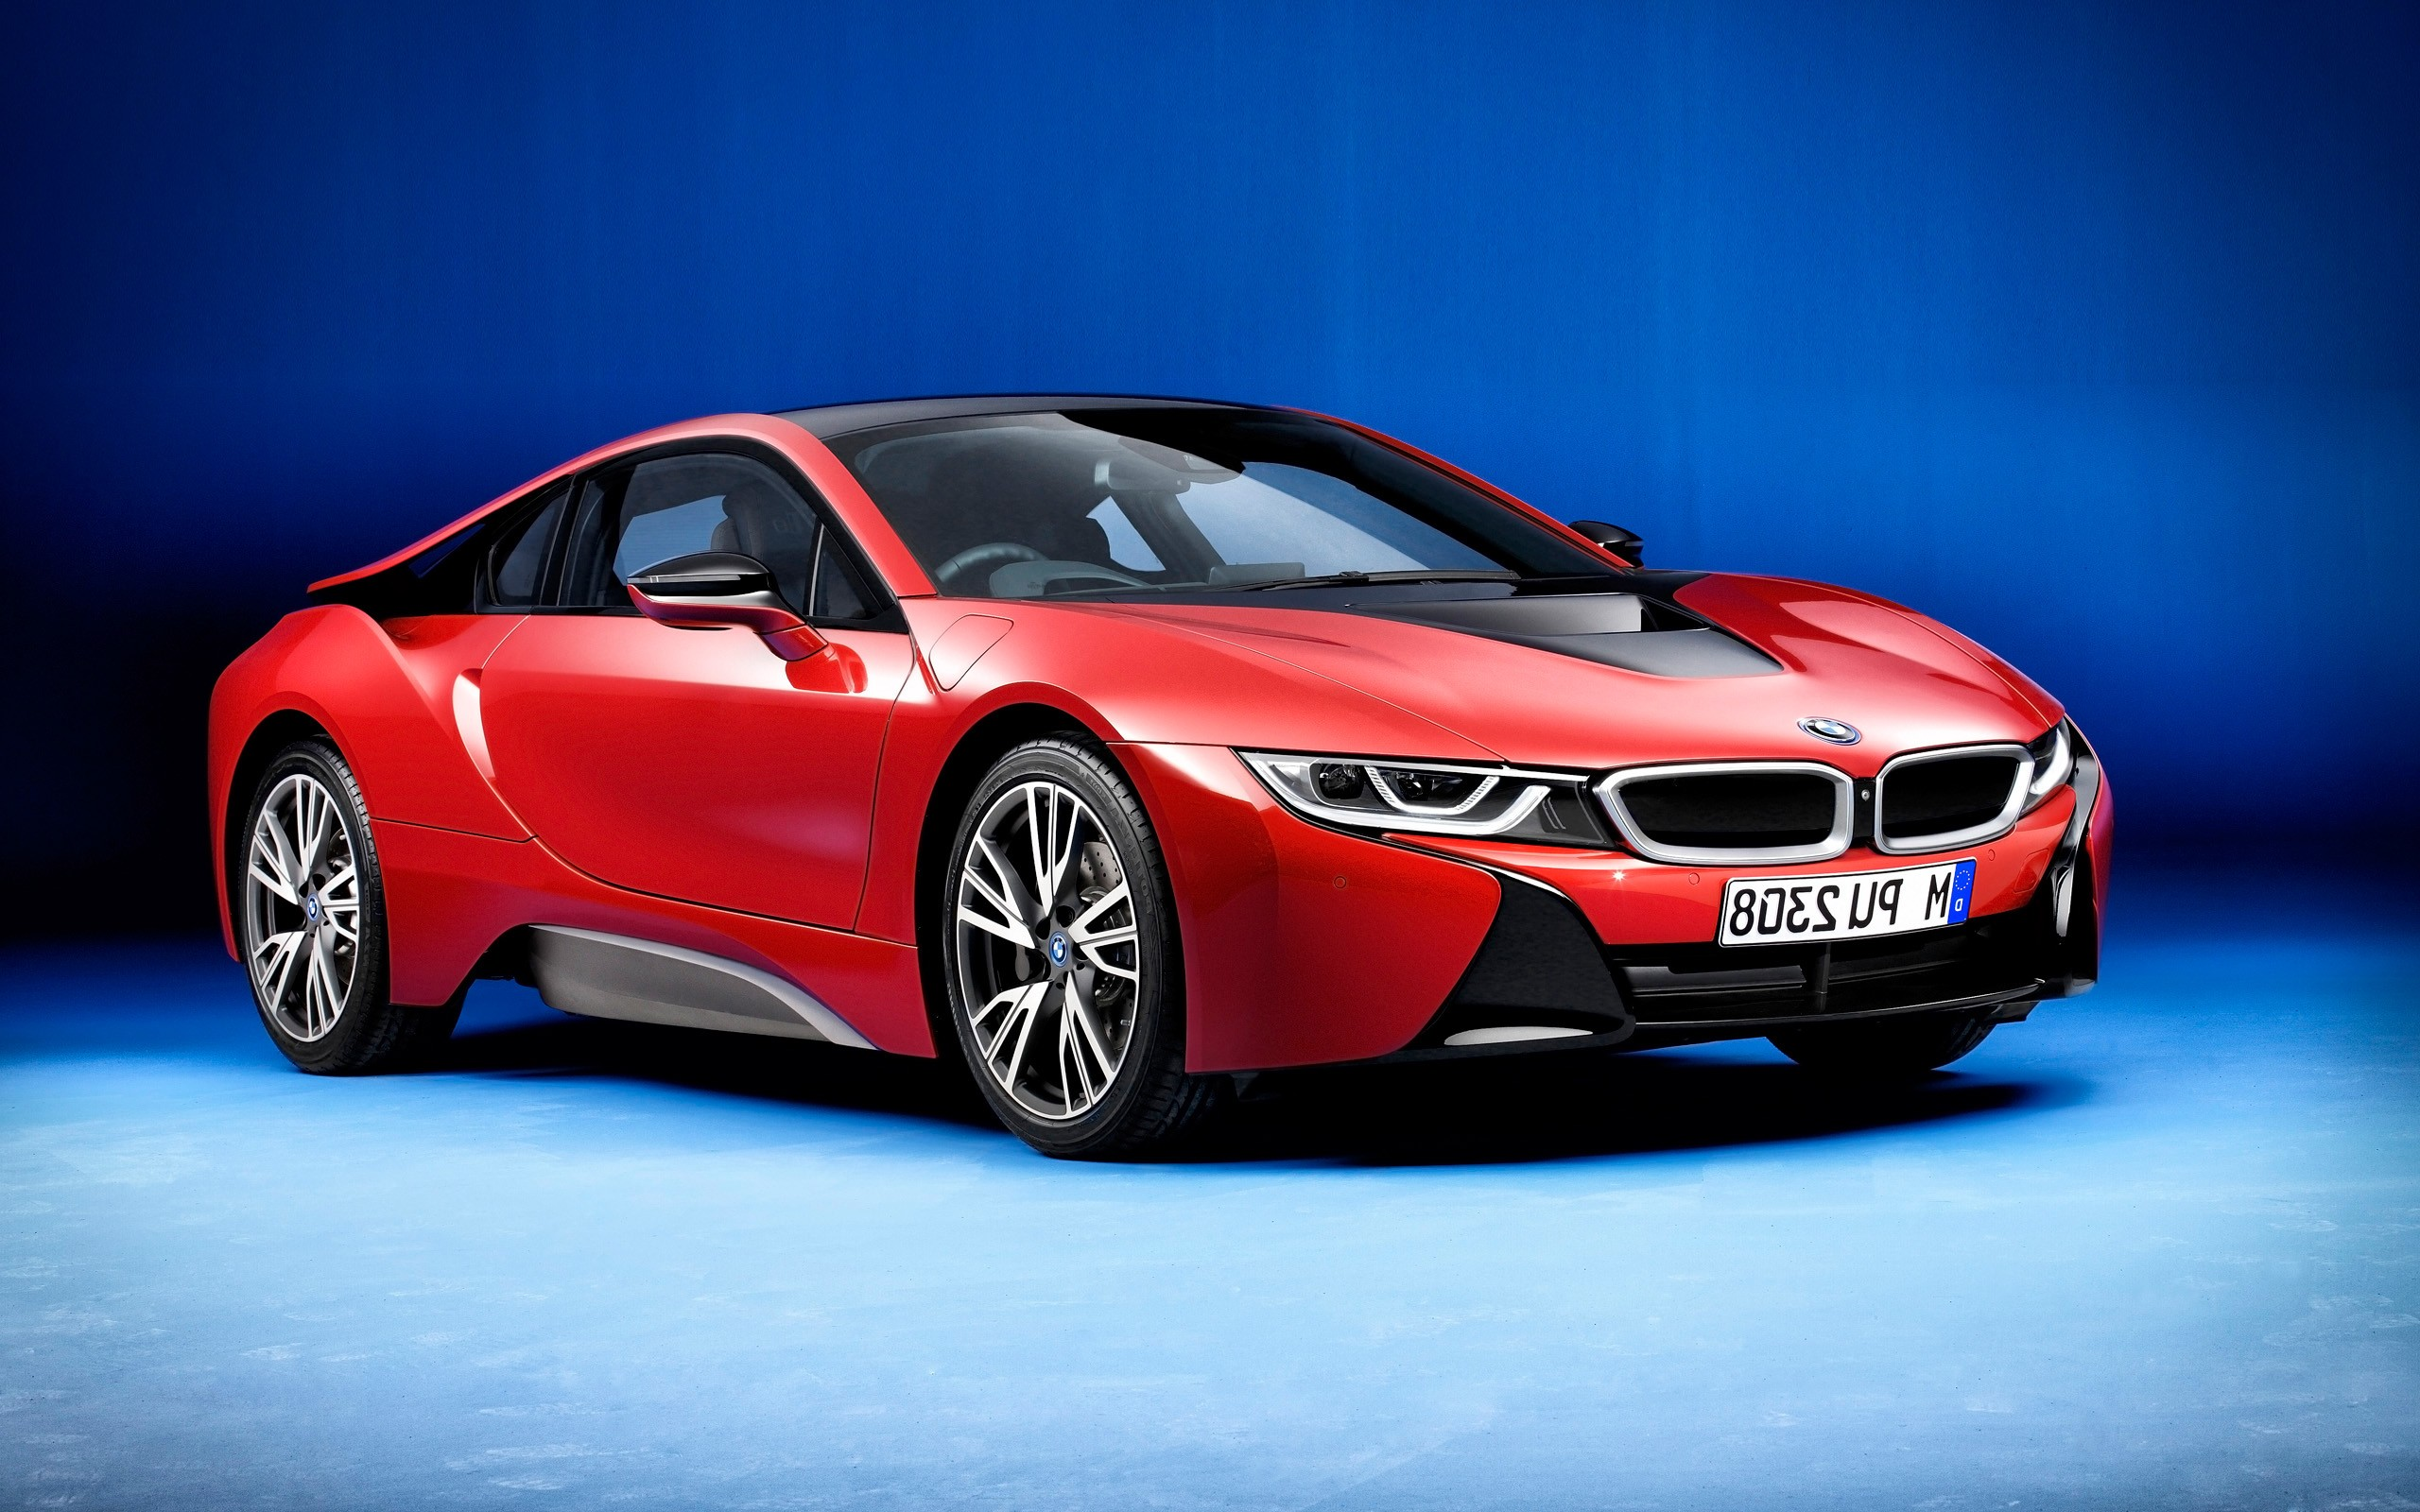 Protonic Edition Bmw I8 Hd Cars 4k Wallpapers Images Backgrounds